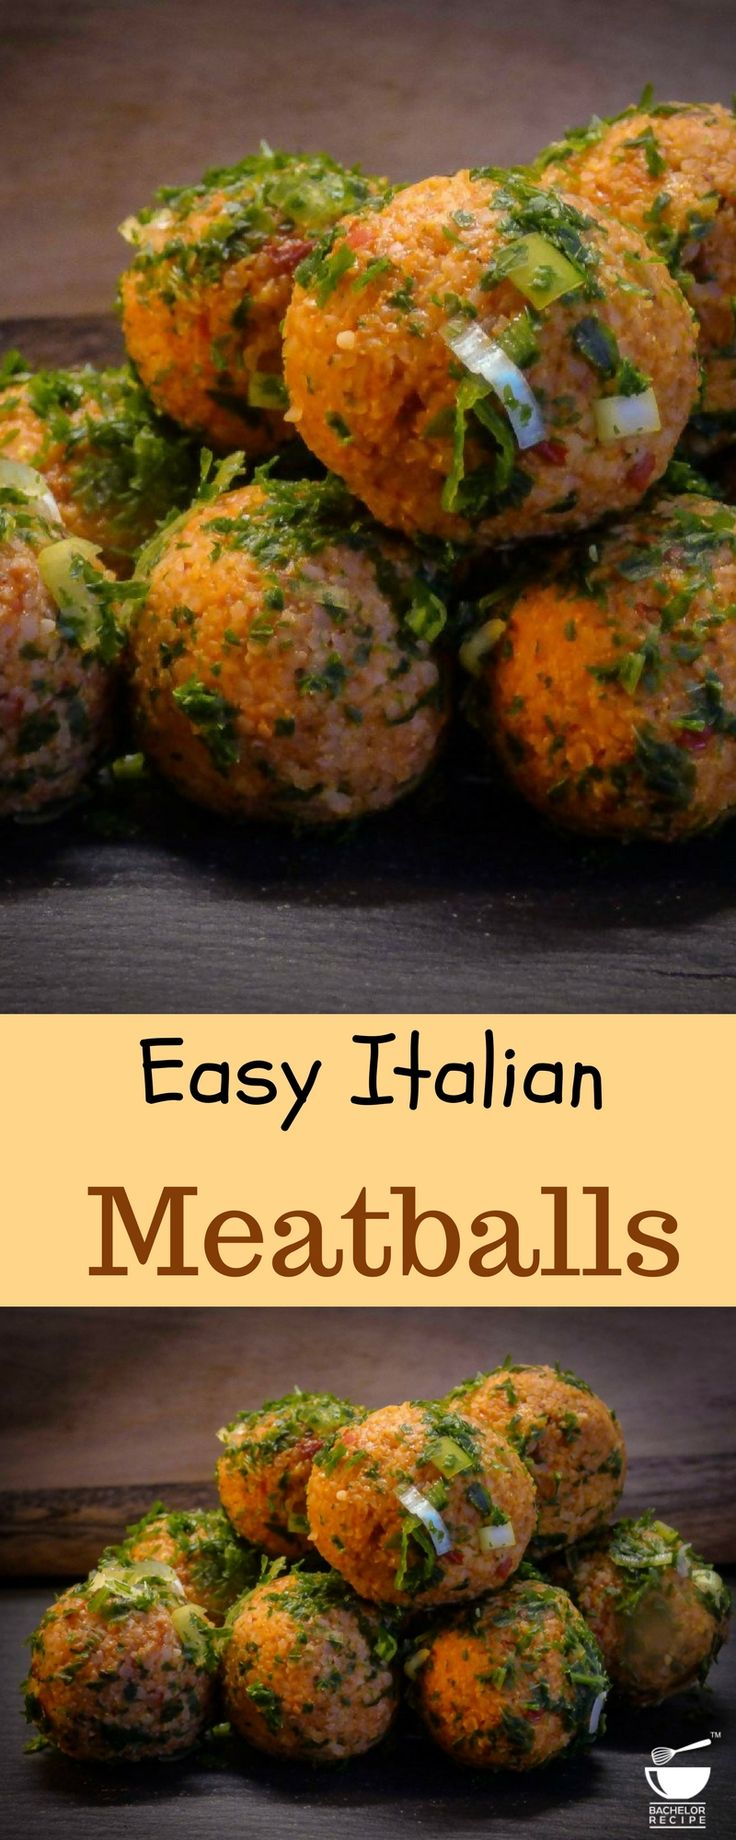 Delicious meatballs are easy to make. Just 3 simple steps Mix it, Bake it and Serve it. - Bachelor Recipe.  #meat #contest #recipe #nonveg #easy #food #BachelorRecipe #bakedish